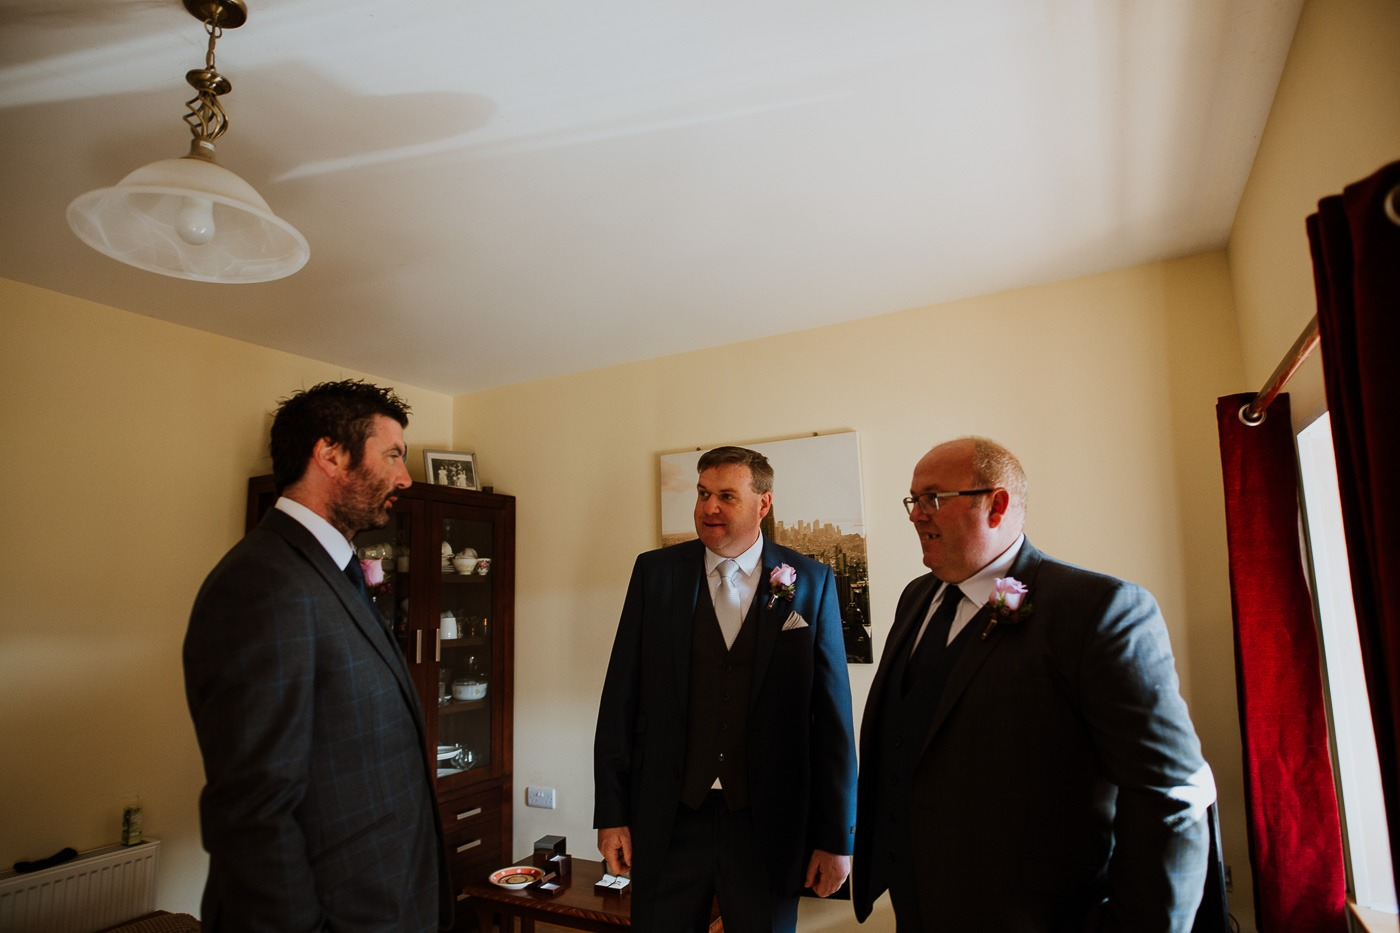 A man wearing a suit and tie standing in a room